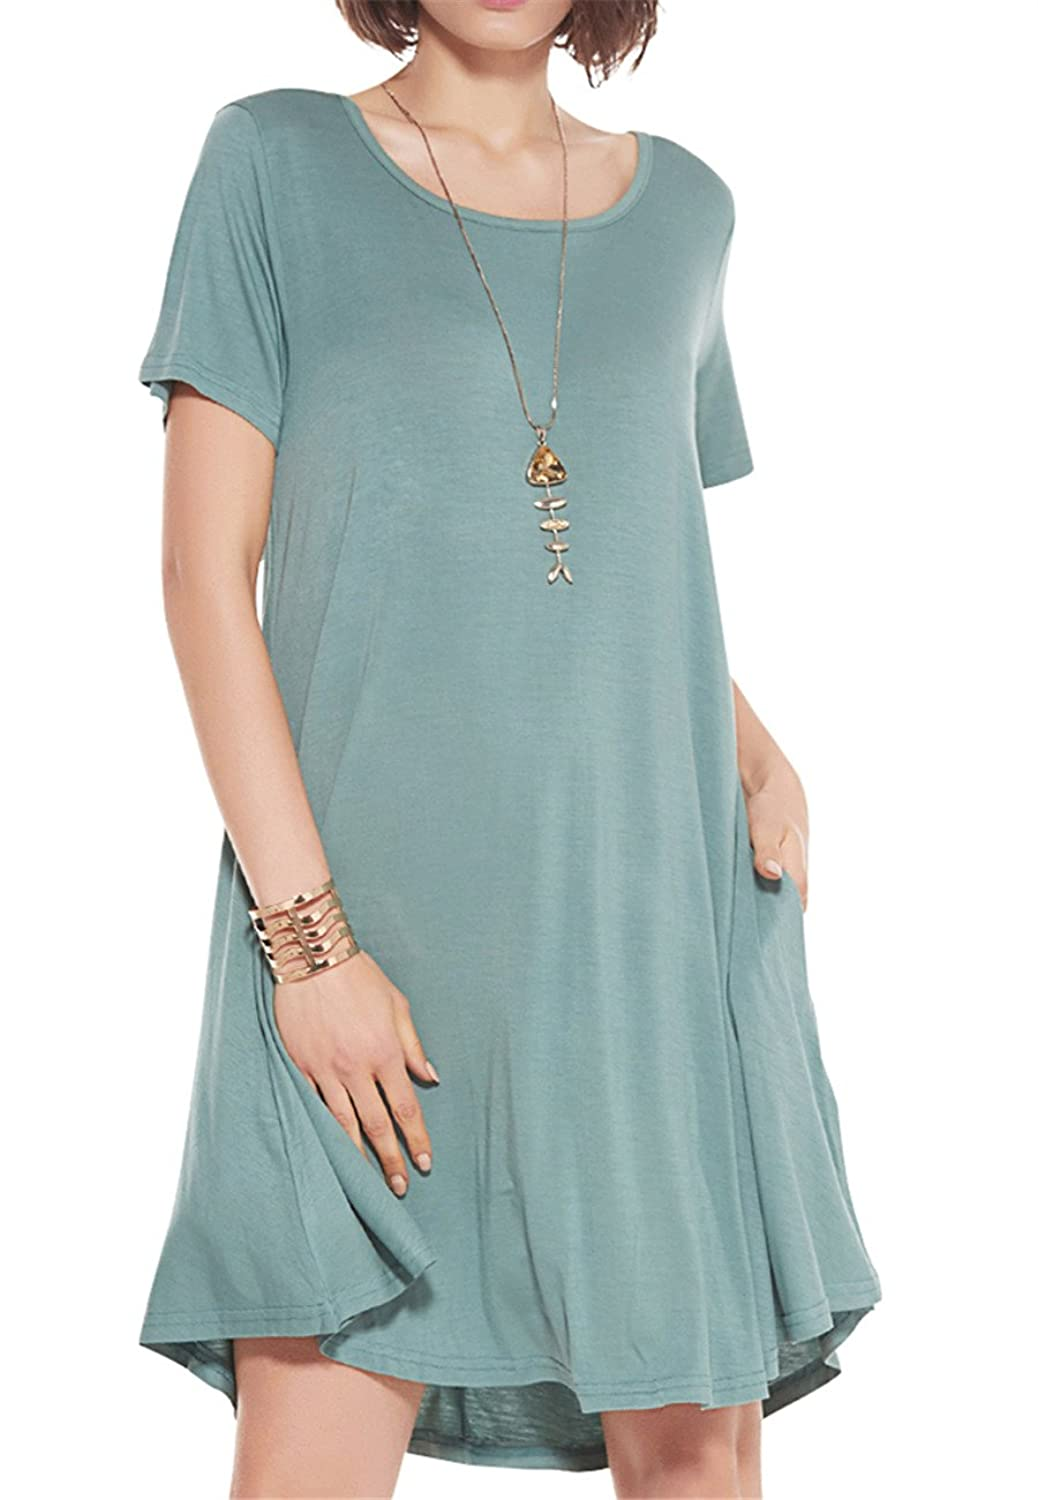 eab41ff9fd55c Features: Pockets, long sleeve, A-line swing dress sundress, dress for  autumn and winter, comfy casual ...